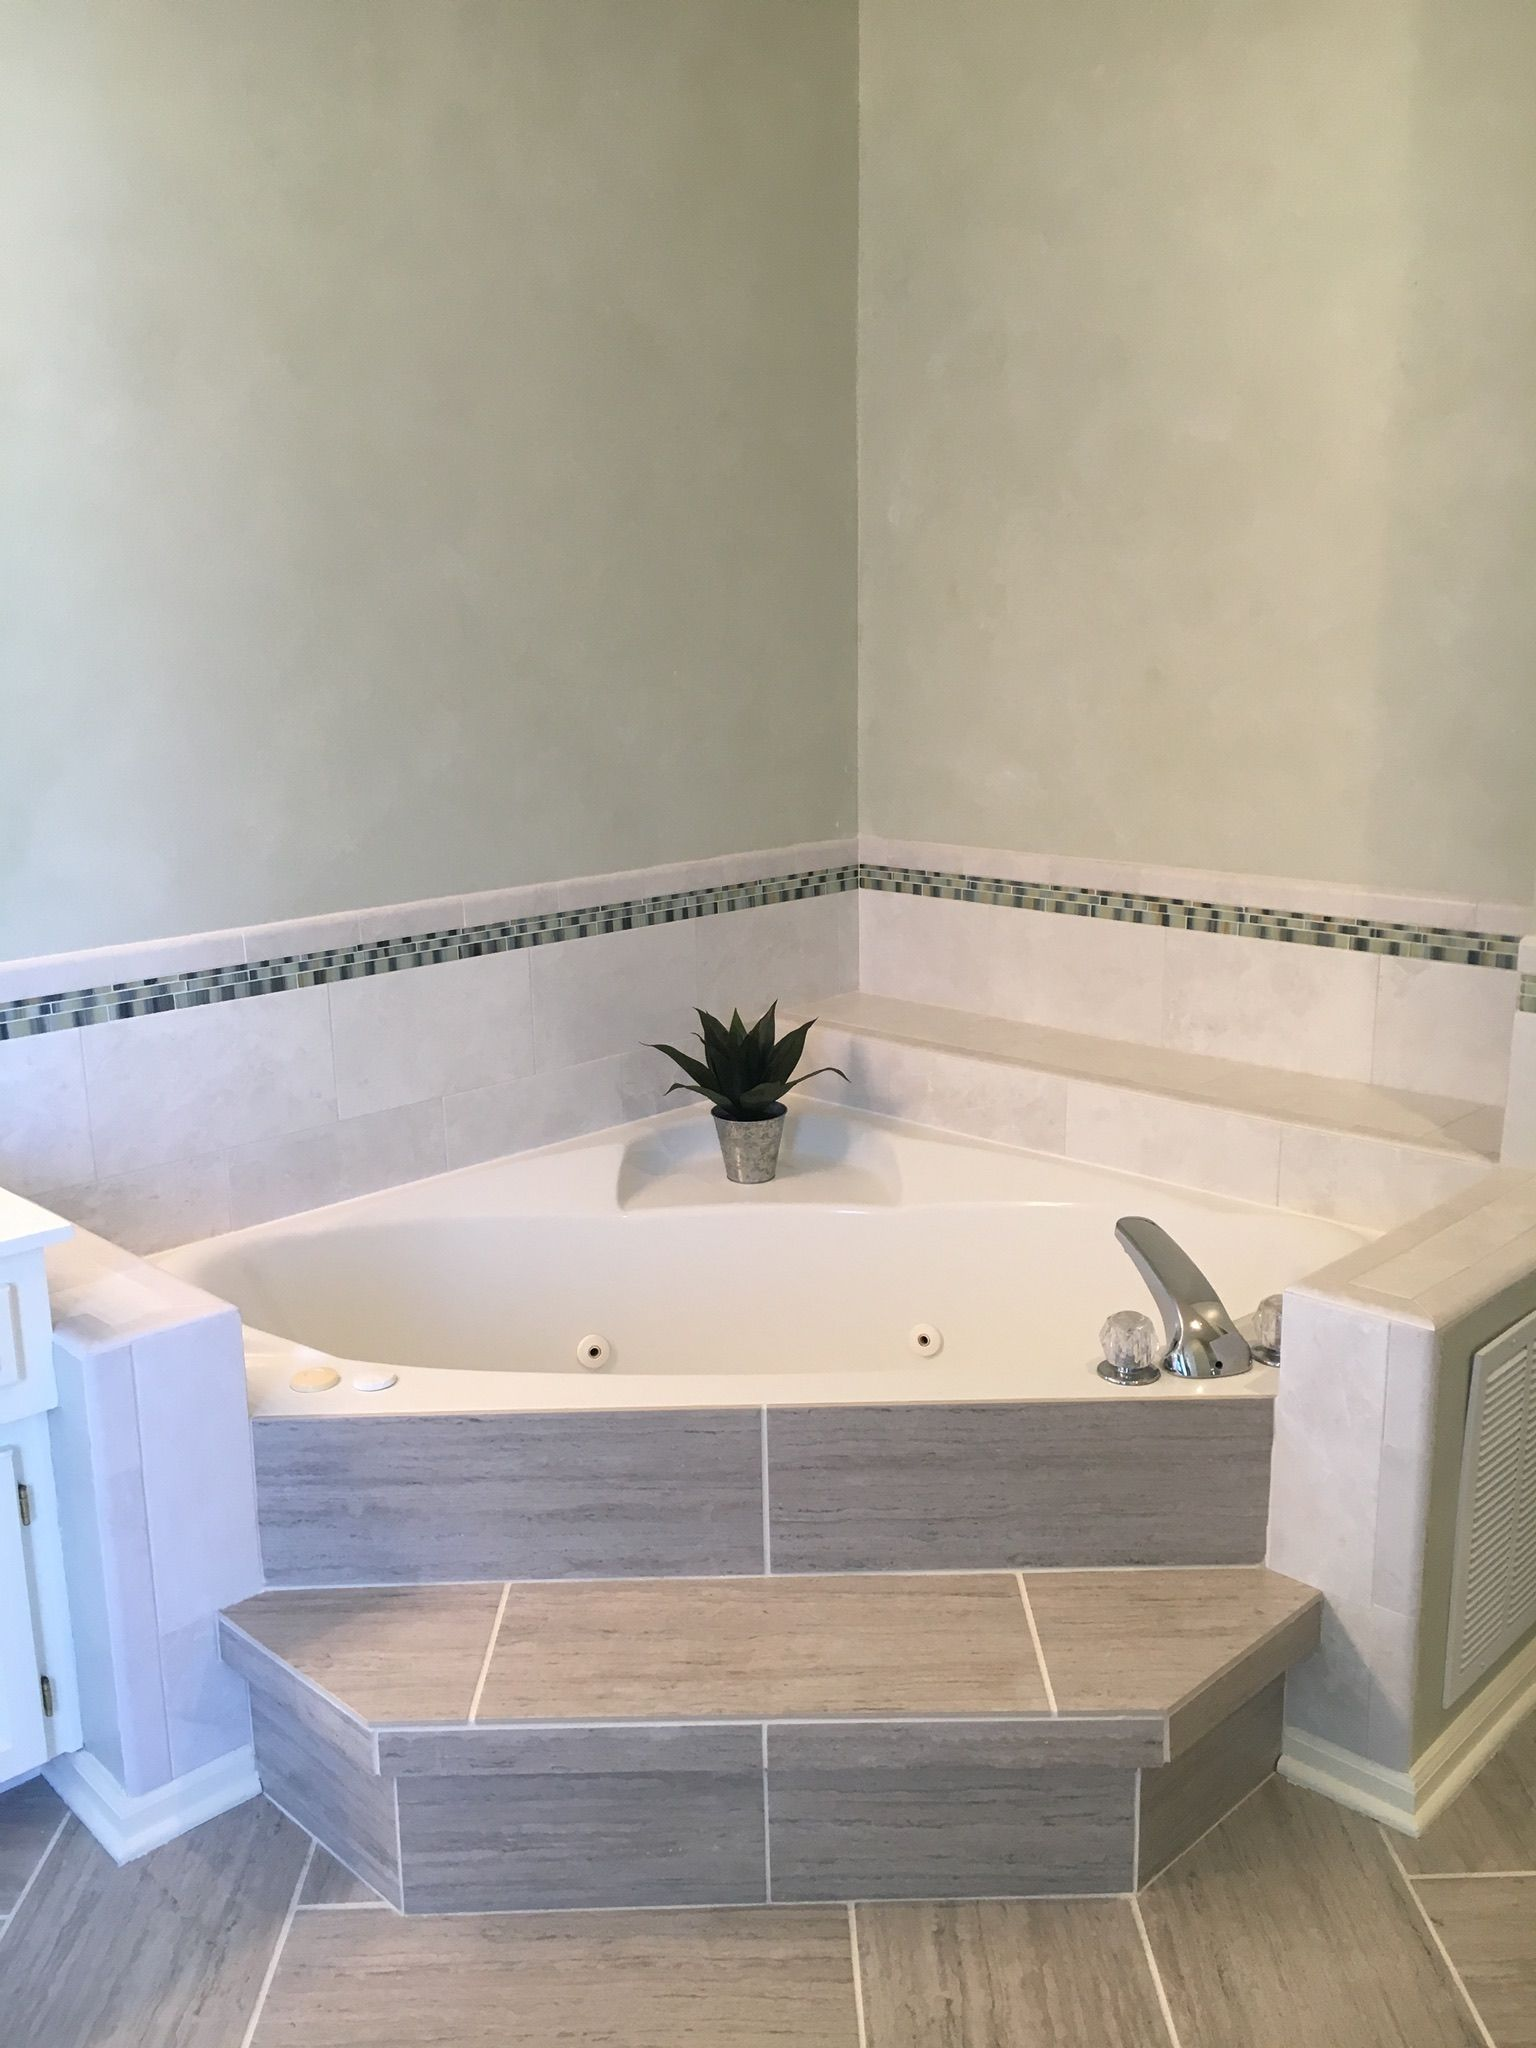 Corner Bathtub Tub Remodel Bathtub Remodel Garden Tub Decorating